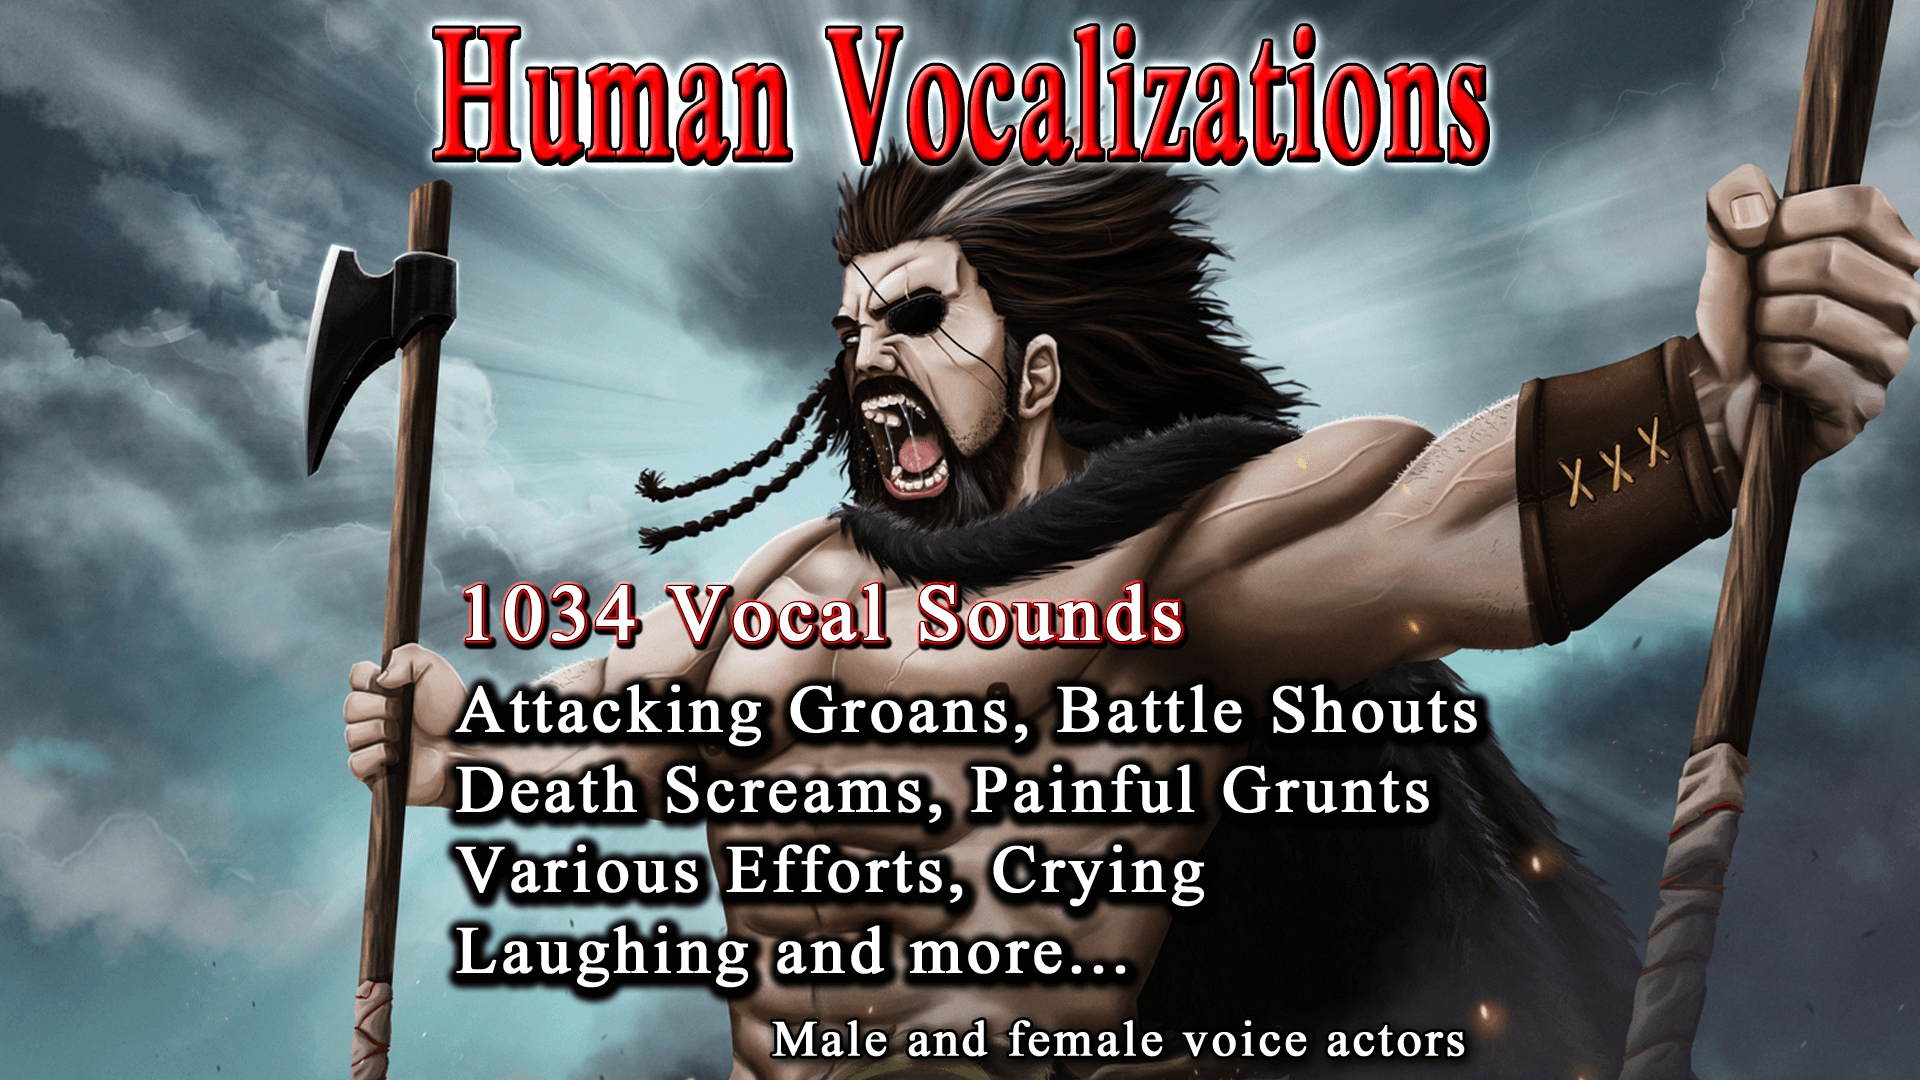 Human Vocalizations by Gamemaster Audio in Sound Effects